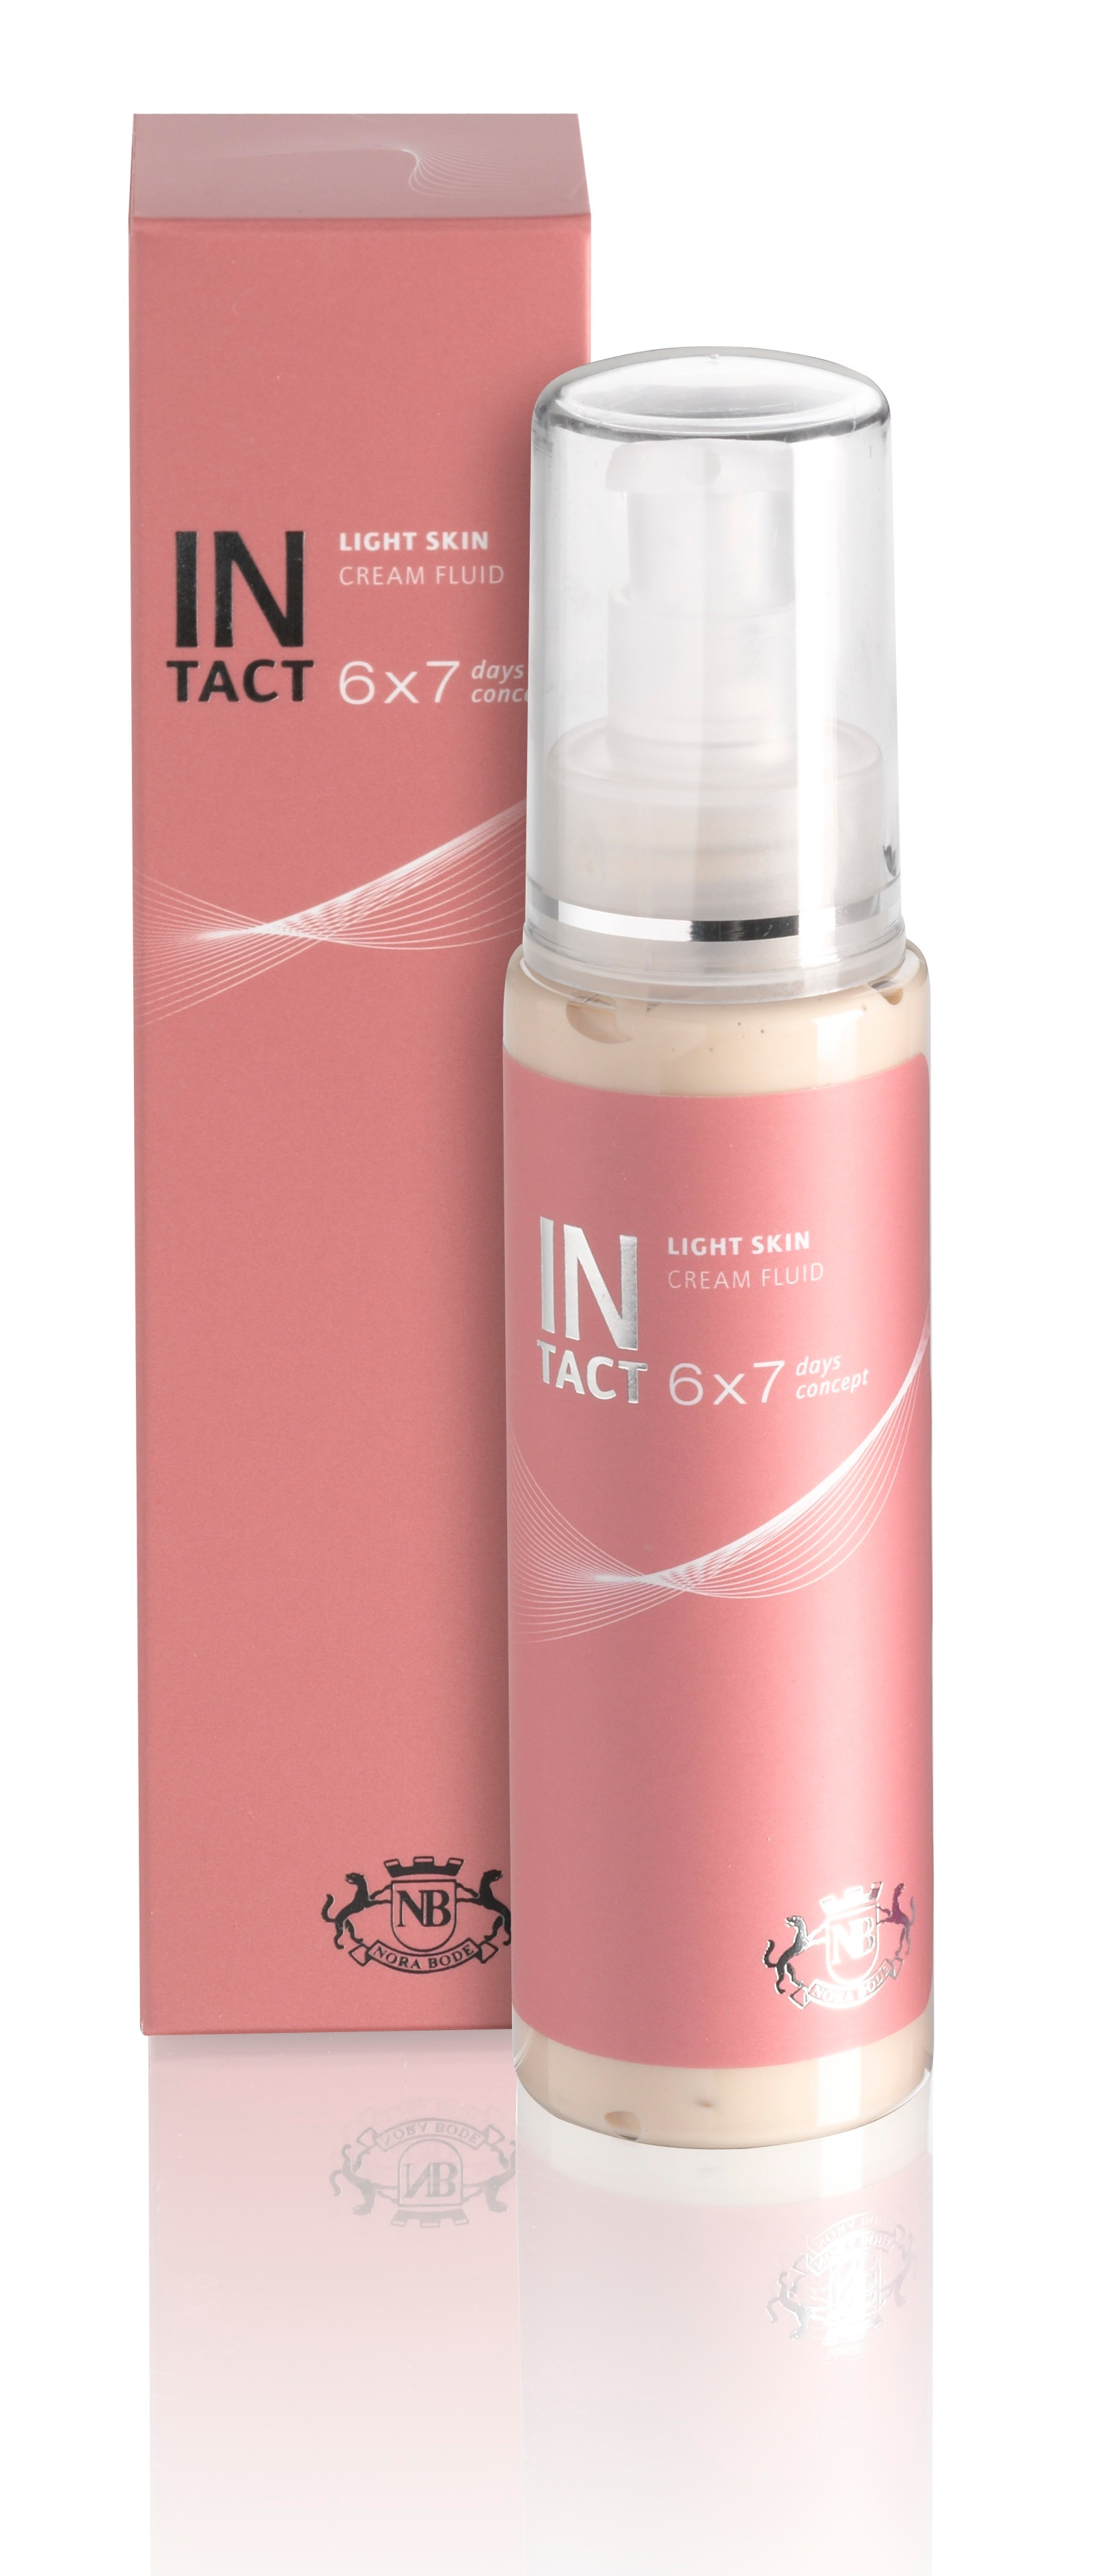 Intact-light-skin-cream-fluid